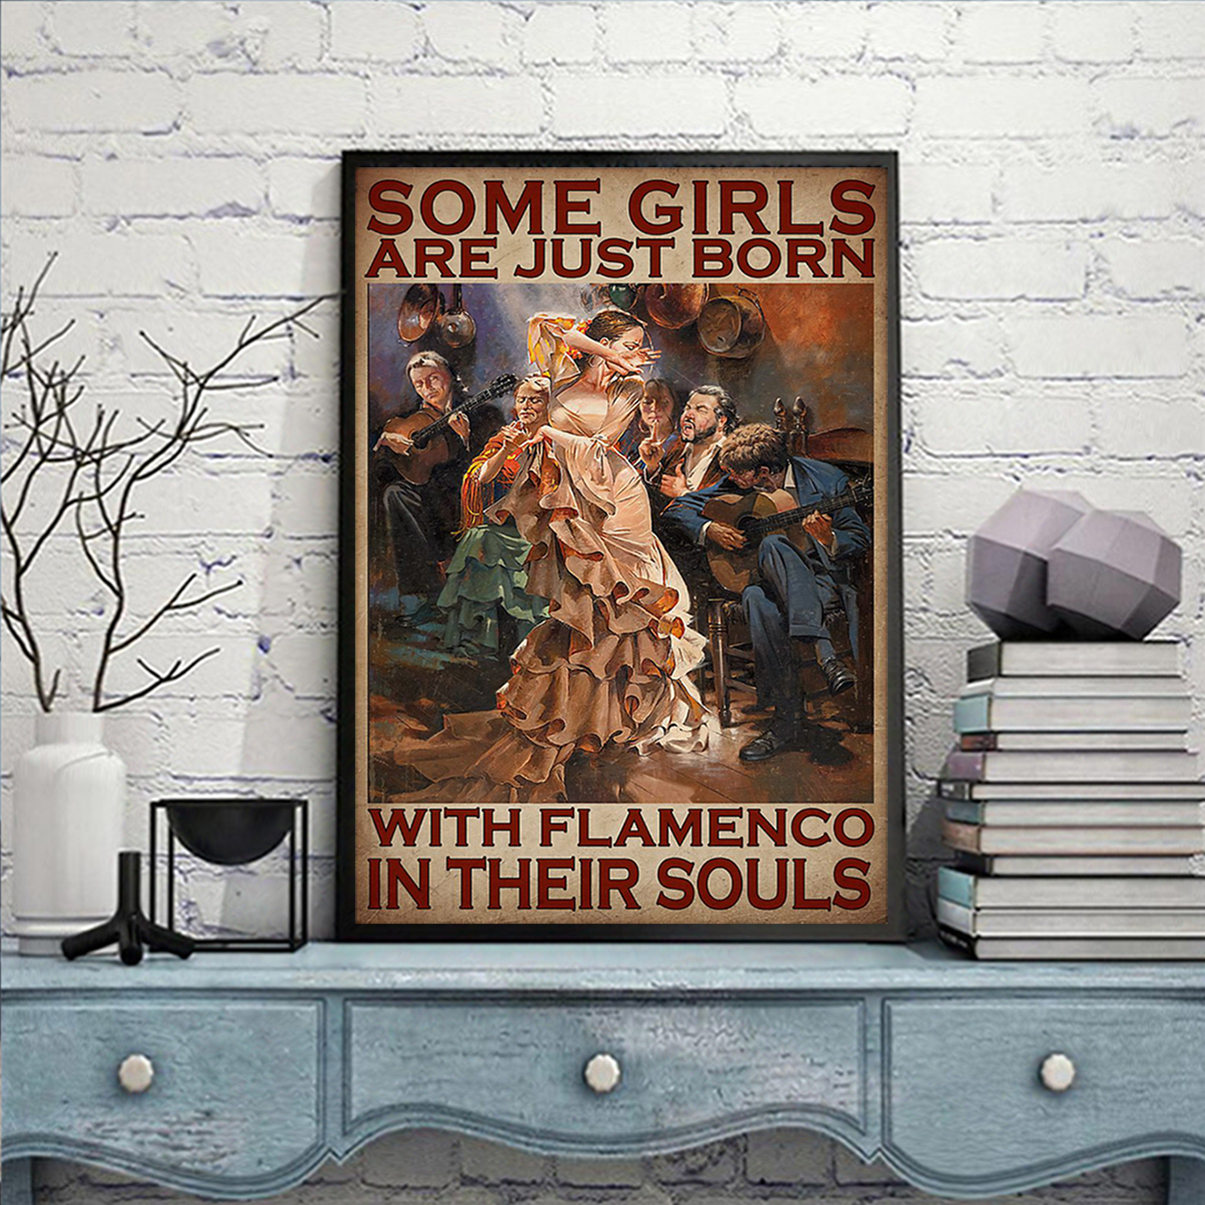 Some girls are just born with flamenco in their souls poster A2